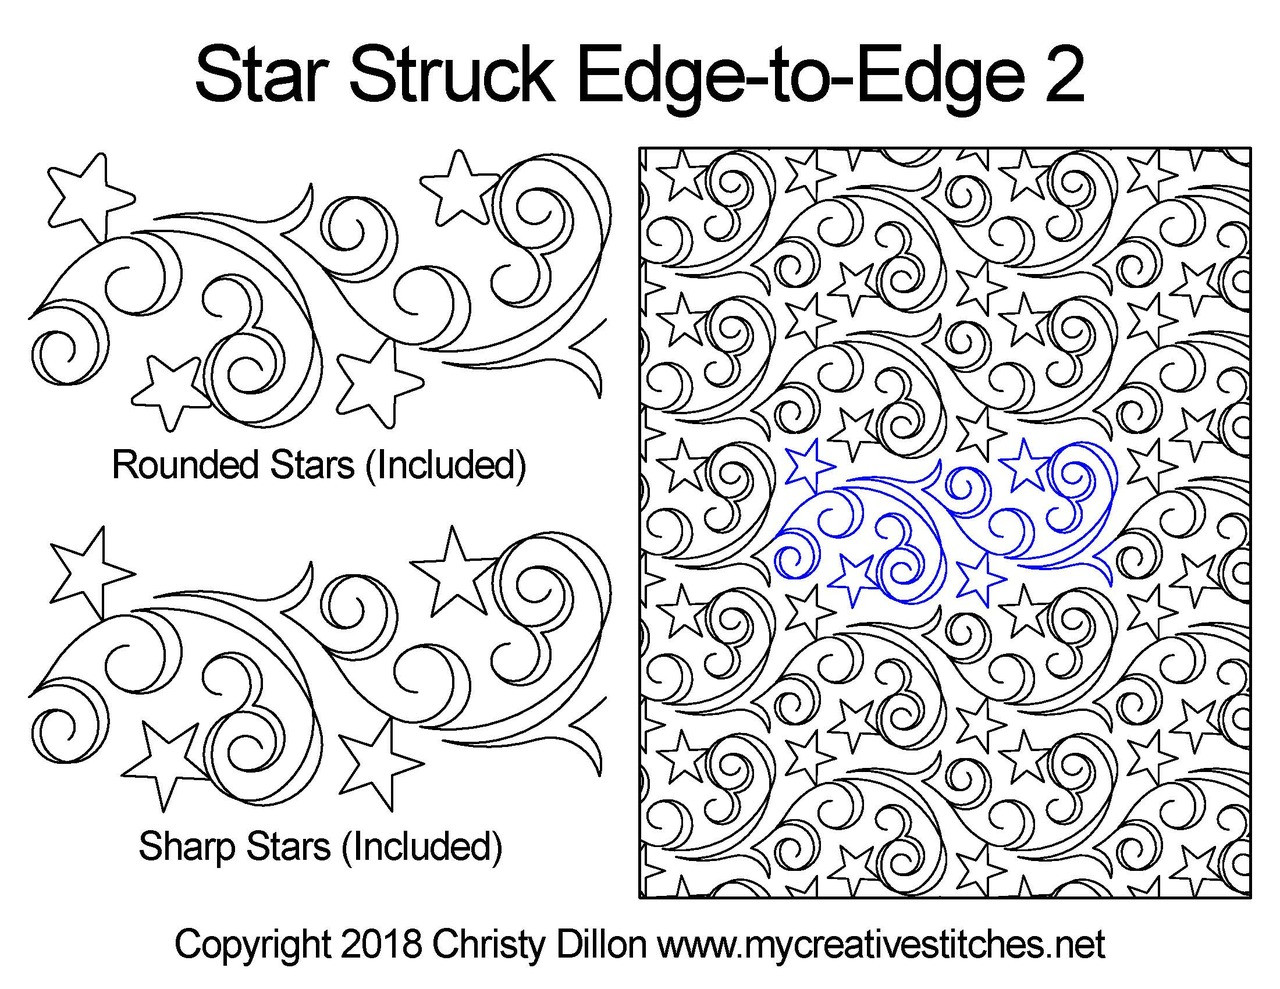 Computerized Quilting Pattern Star Struck Edge-to-Edge 2